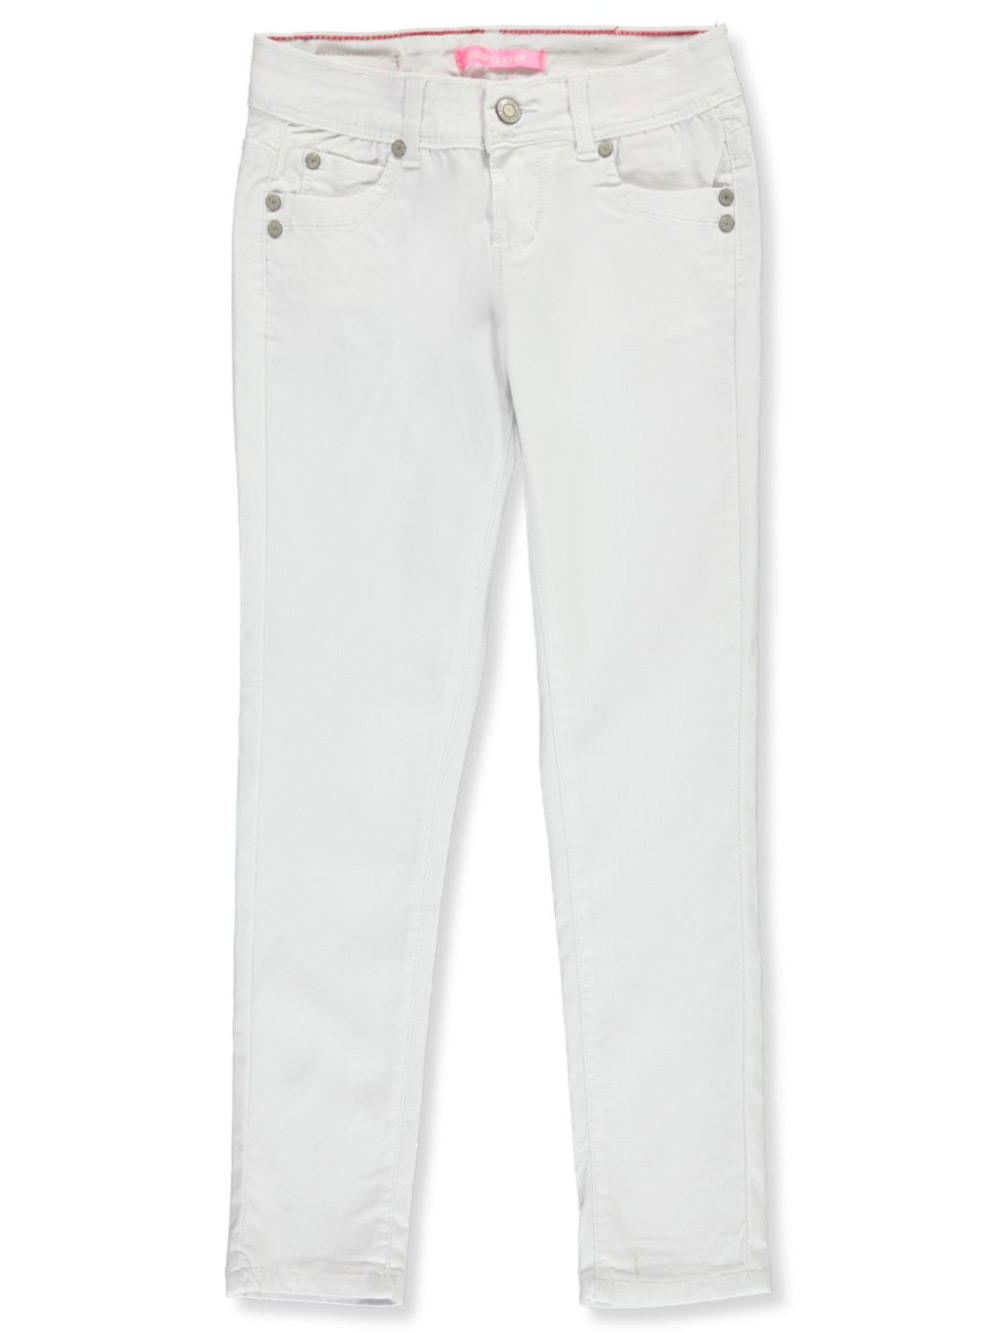 Girls White Pants